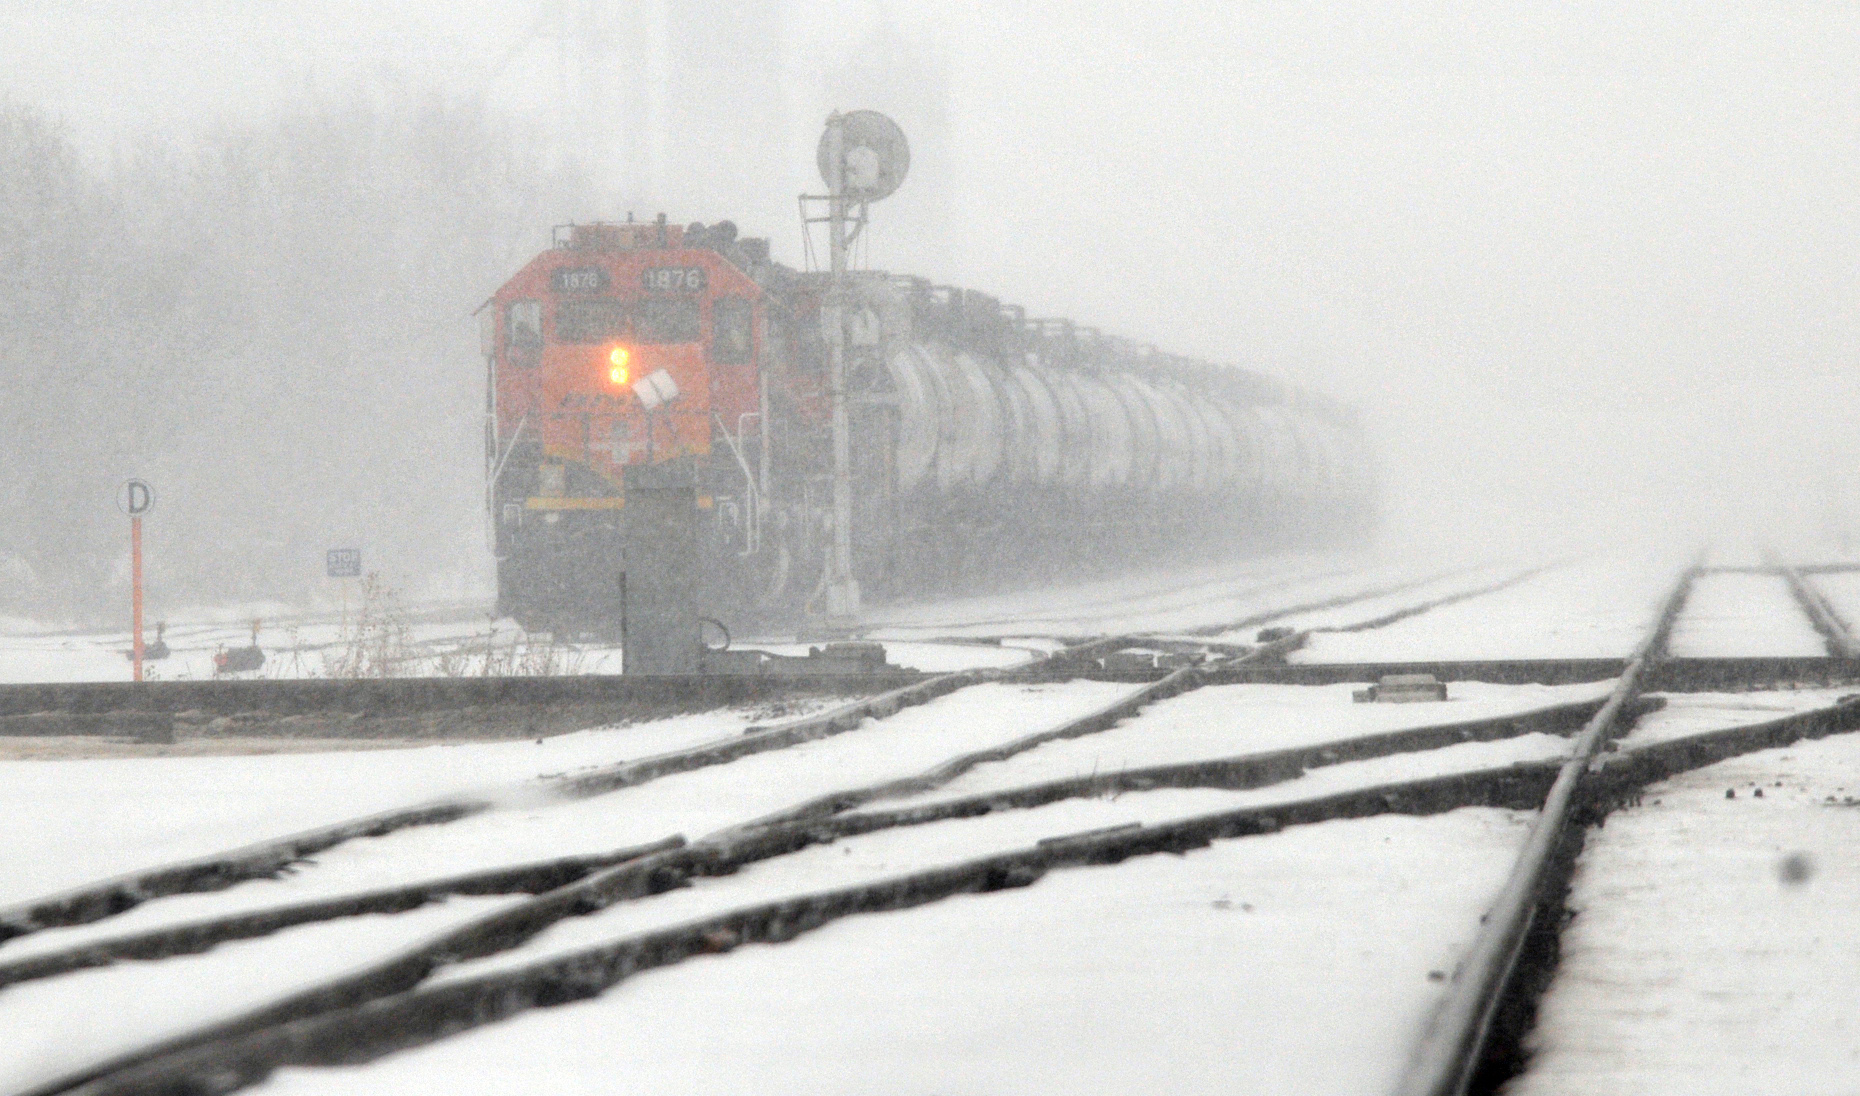 A BNSF train engine in Kansas. (AP Photo/The Hutchinson News, Sandra Milburn)